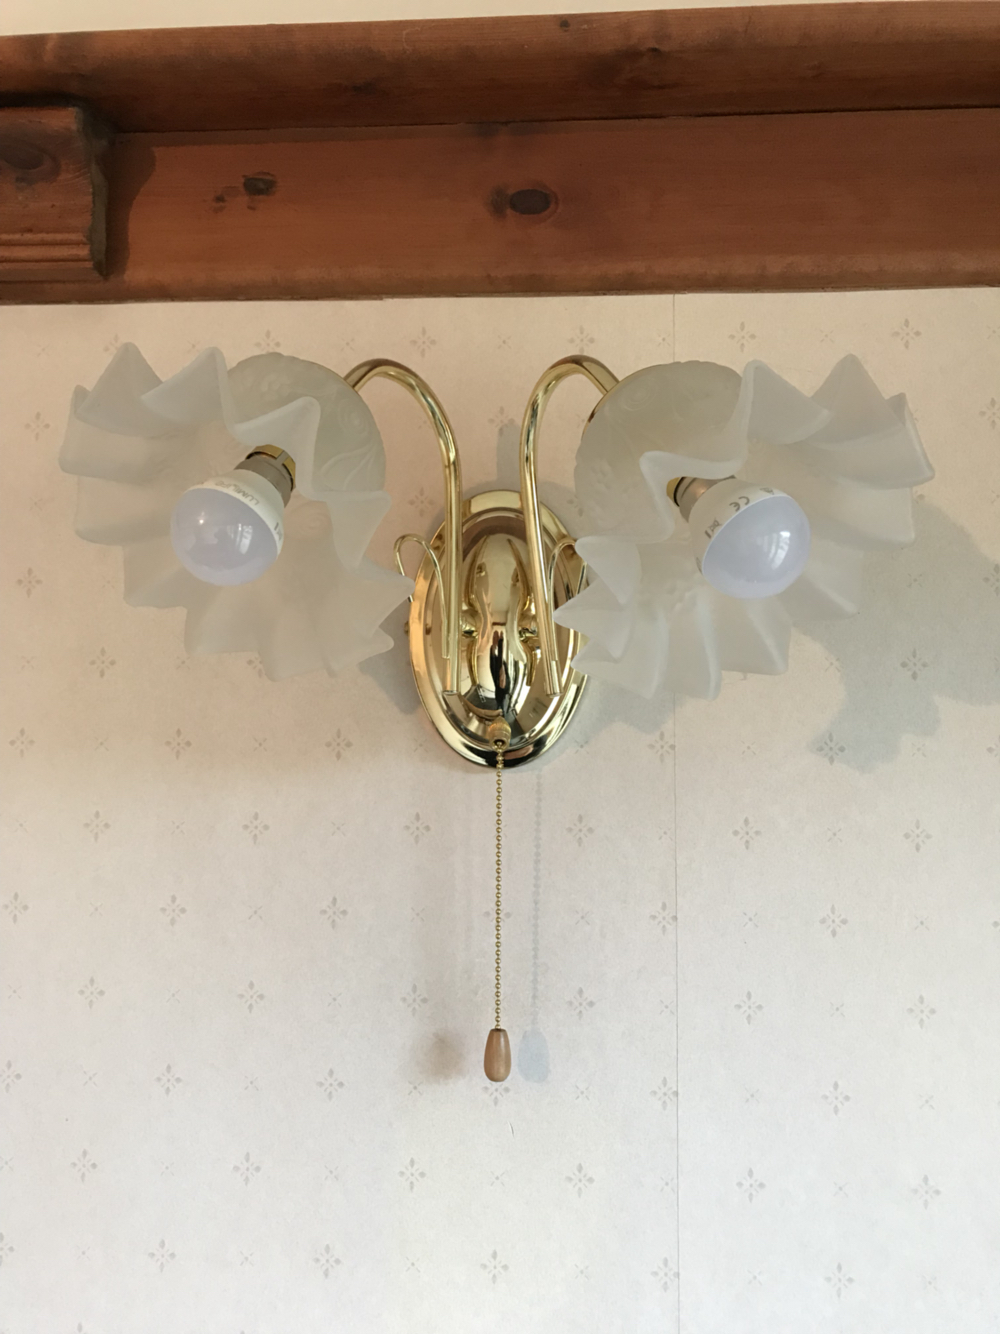 Lights with glass shades as new only been up about 6 months now redecorating that room so wife wants some different ones with the new decor